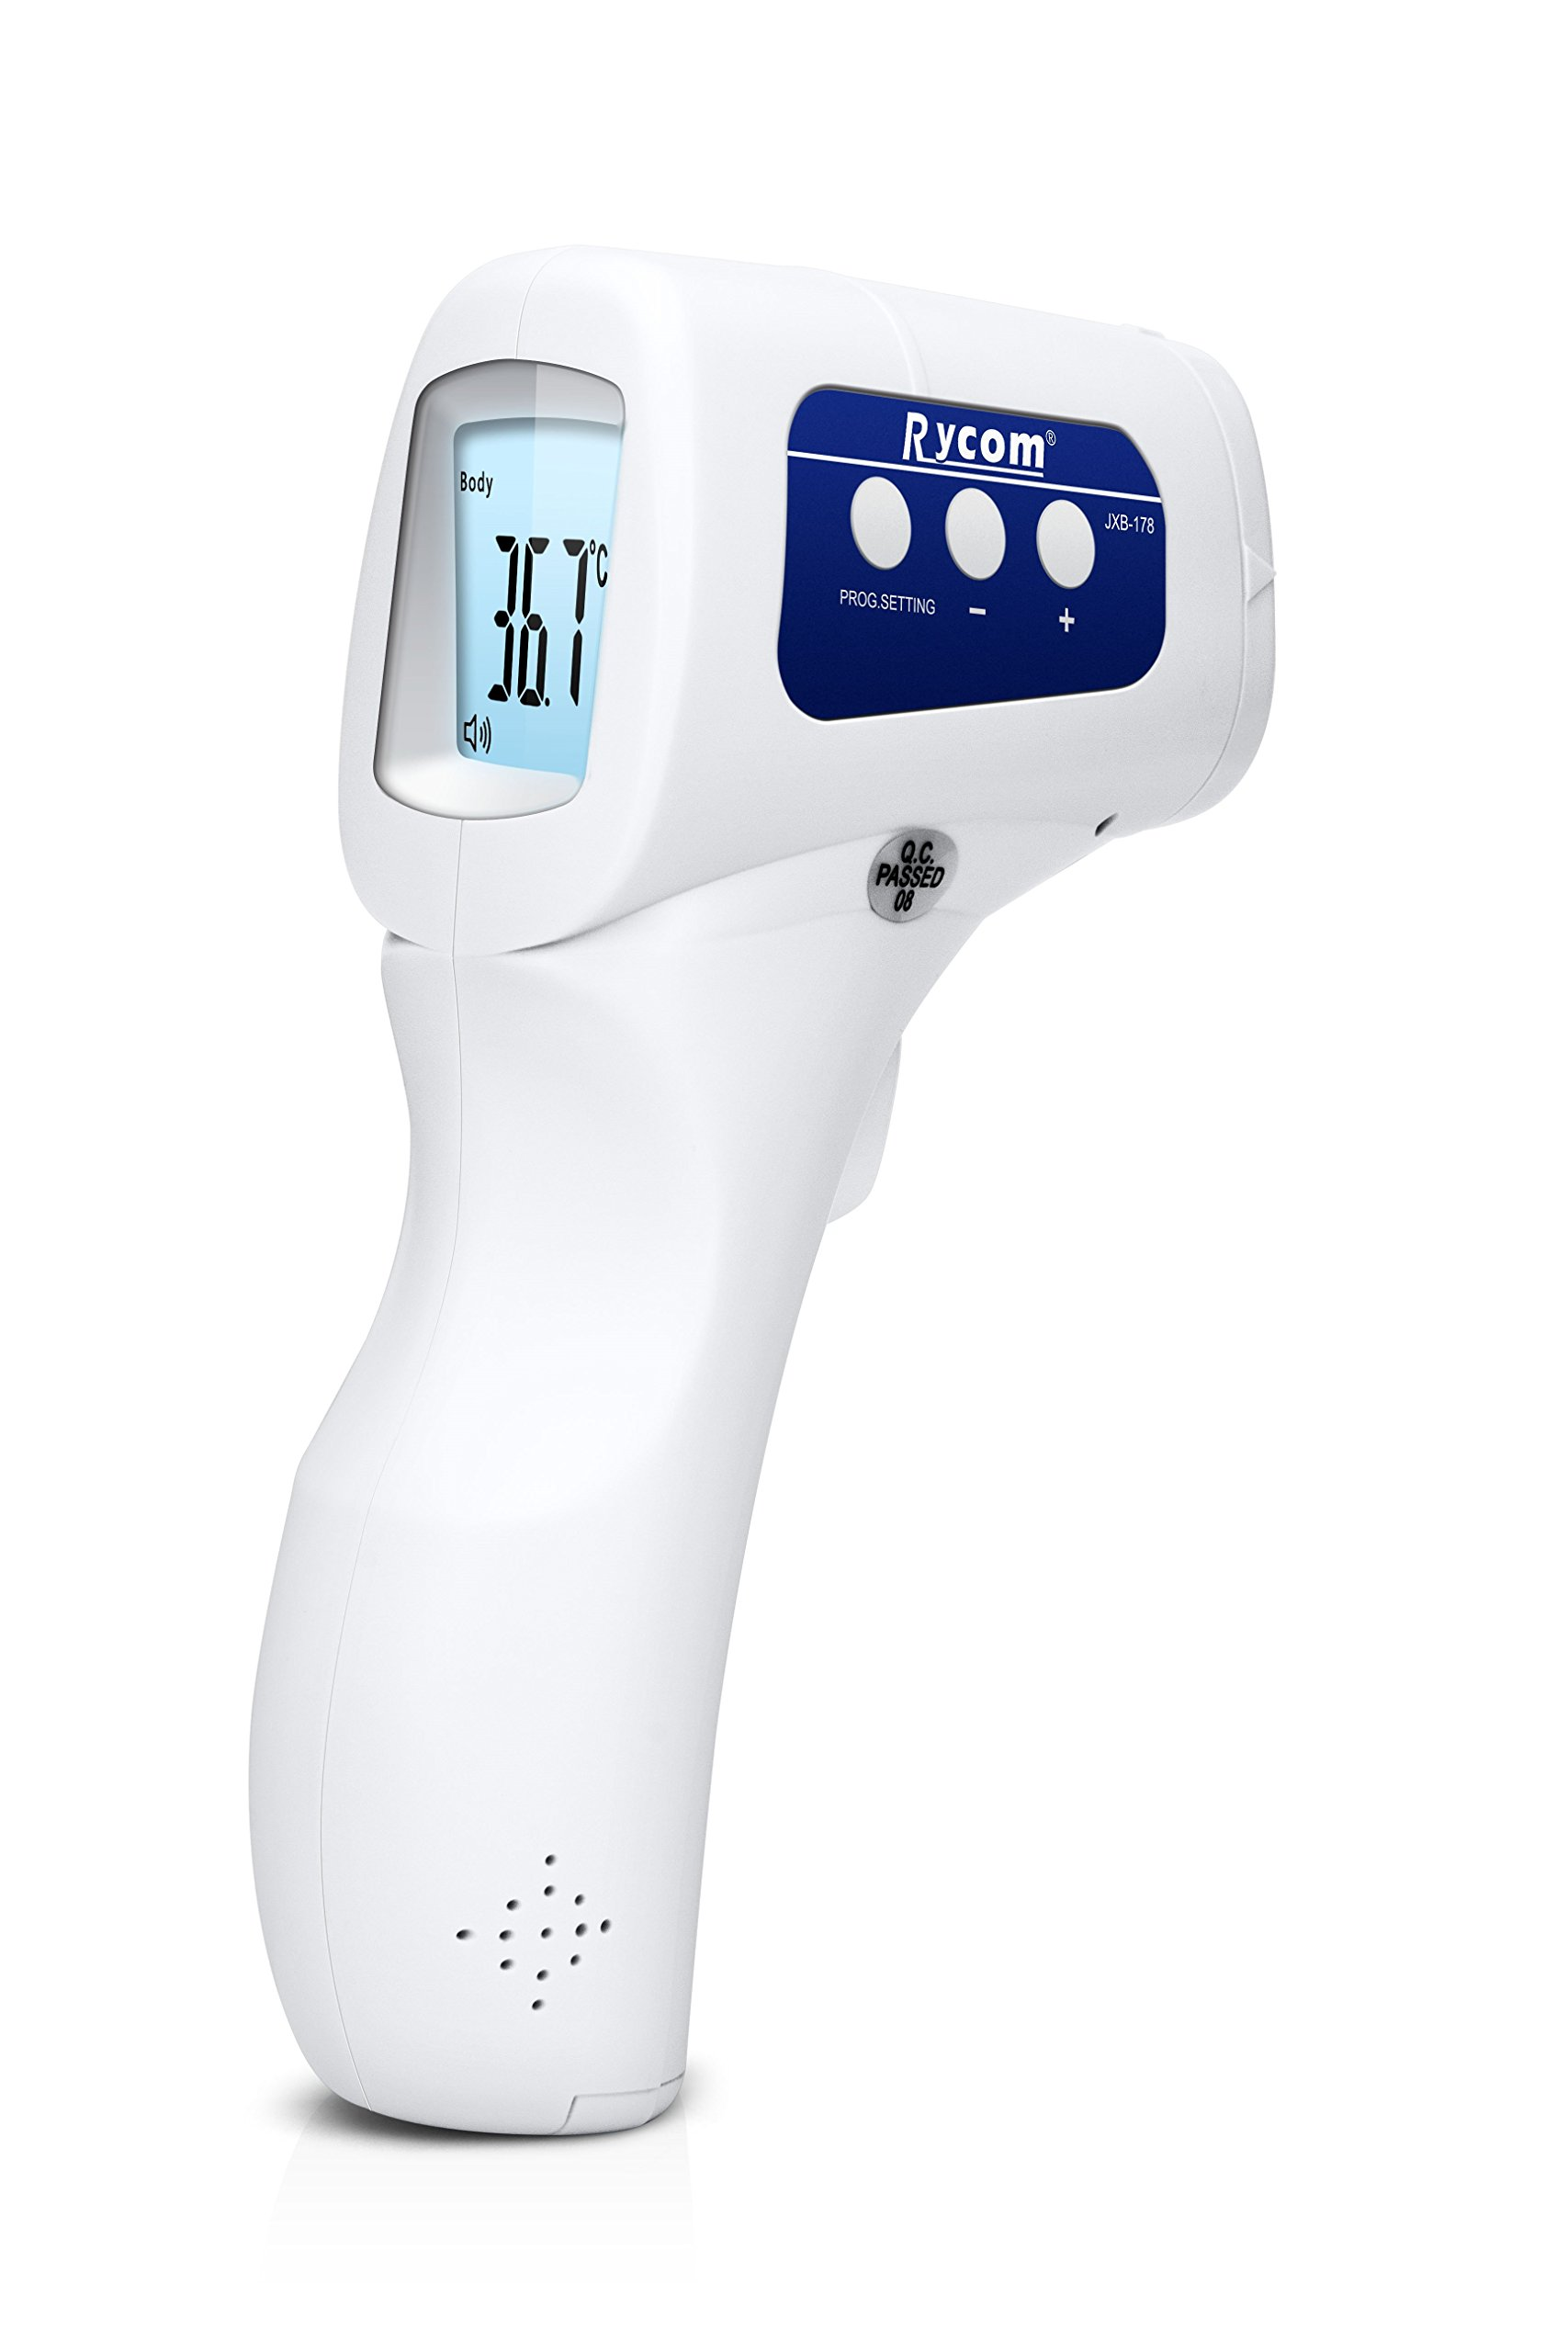 Rycom Portable Infrared Forehead No-contact Non-touch LCD Baby Fever Thermometer 4 in 1 Multifunctional Medical Home Healthcare Products 100% Safe For Kids Infant Baby